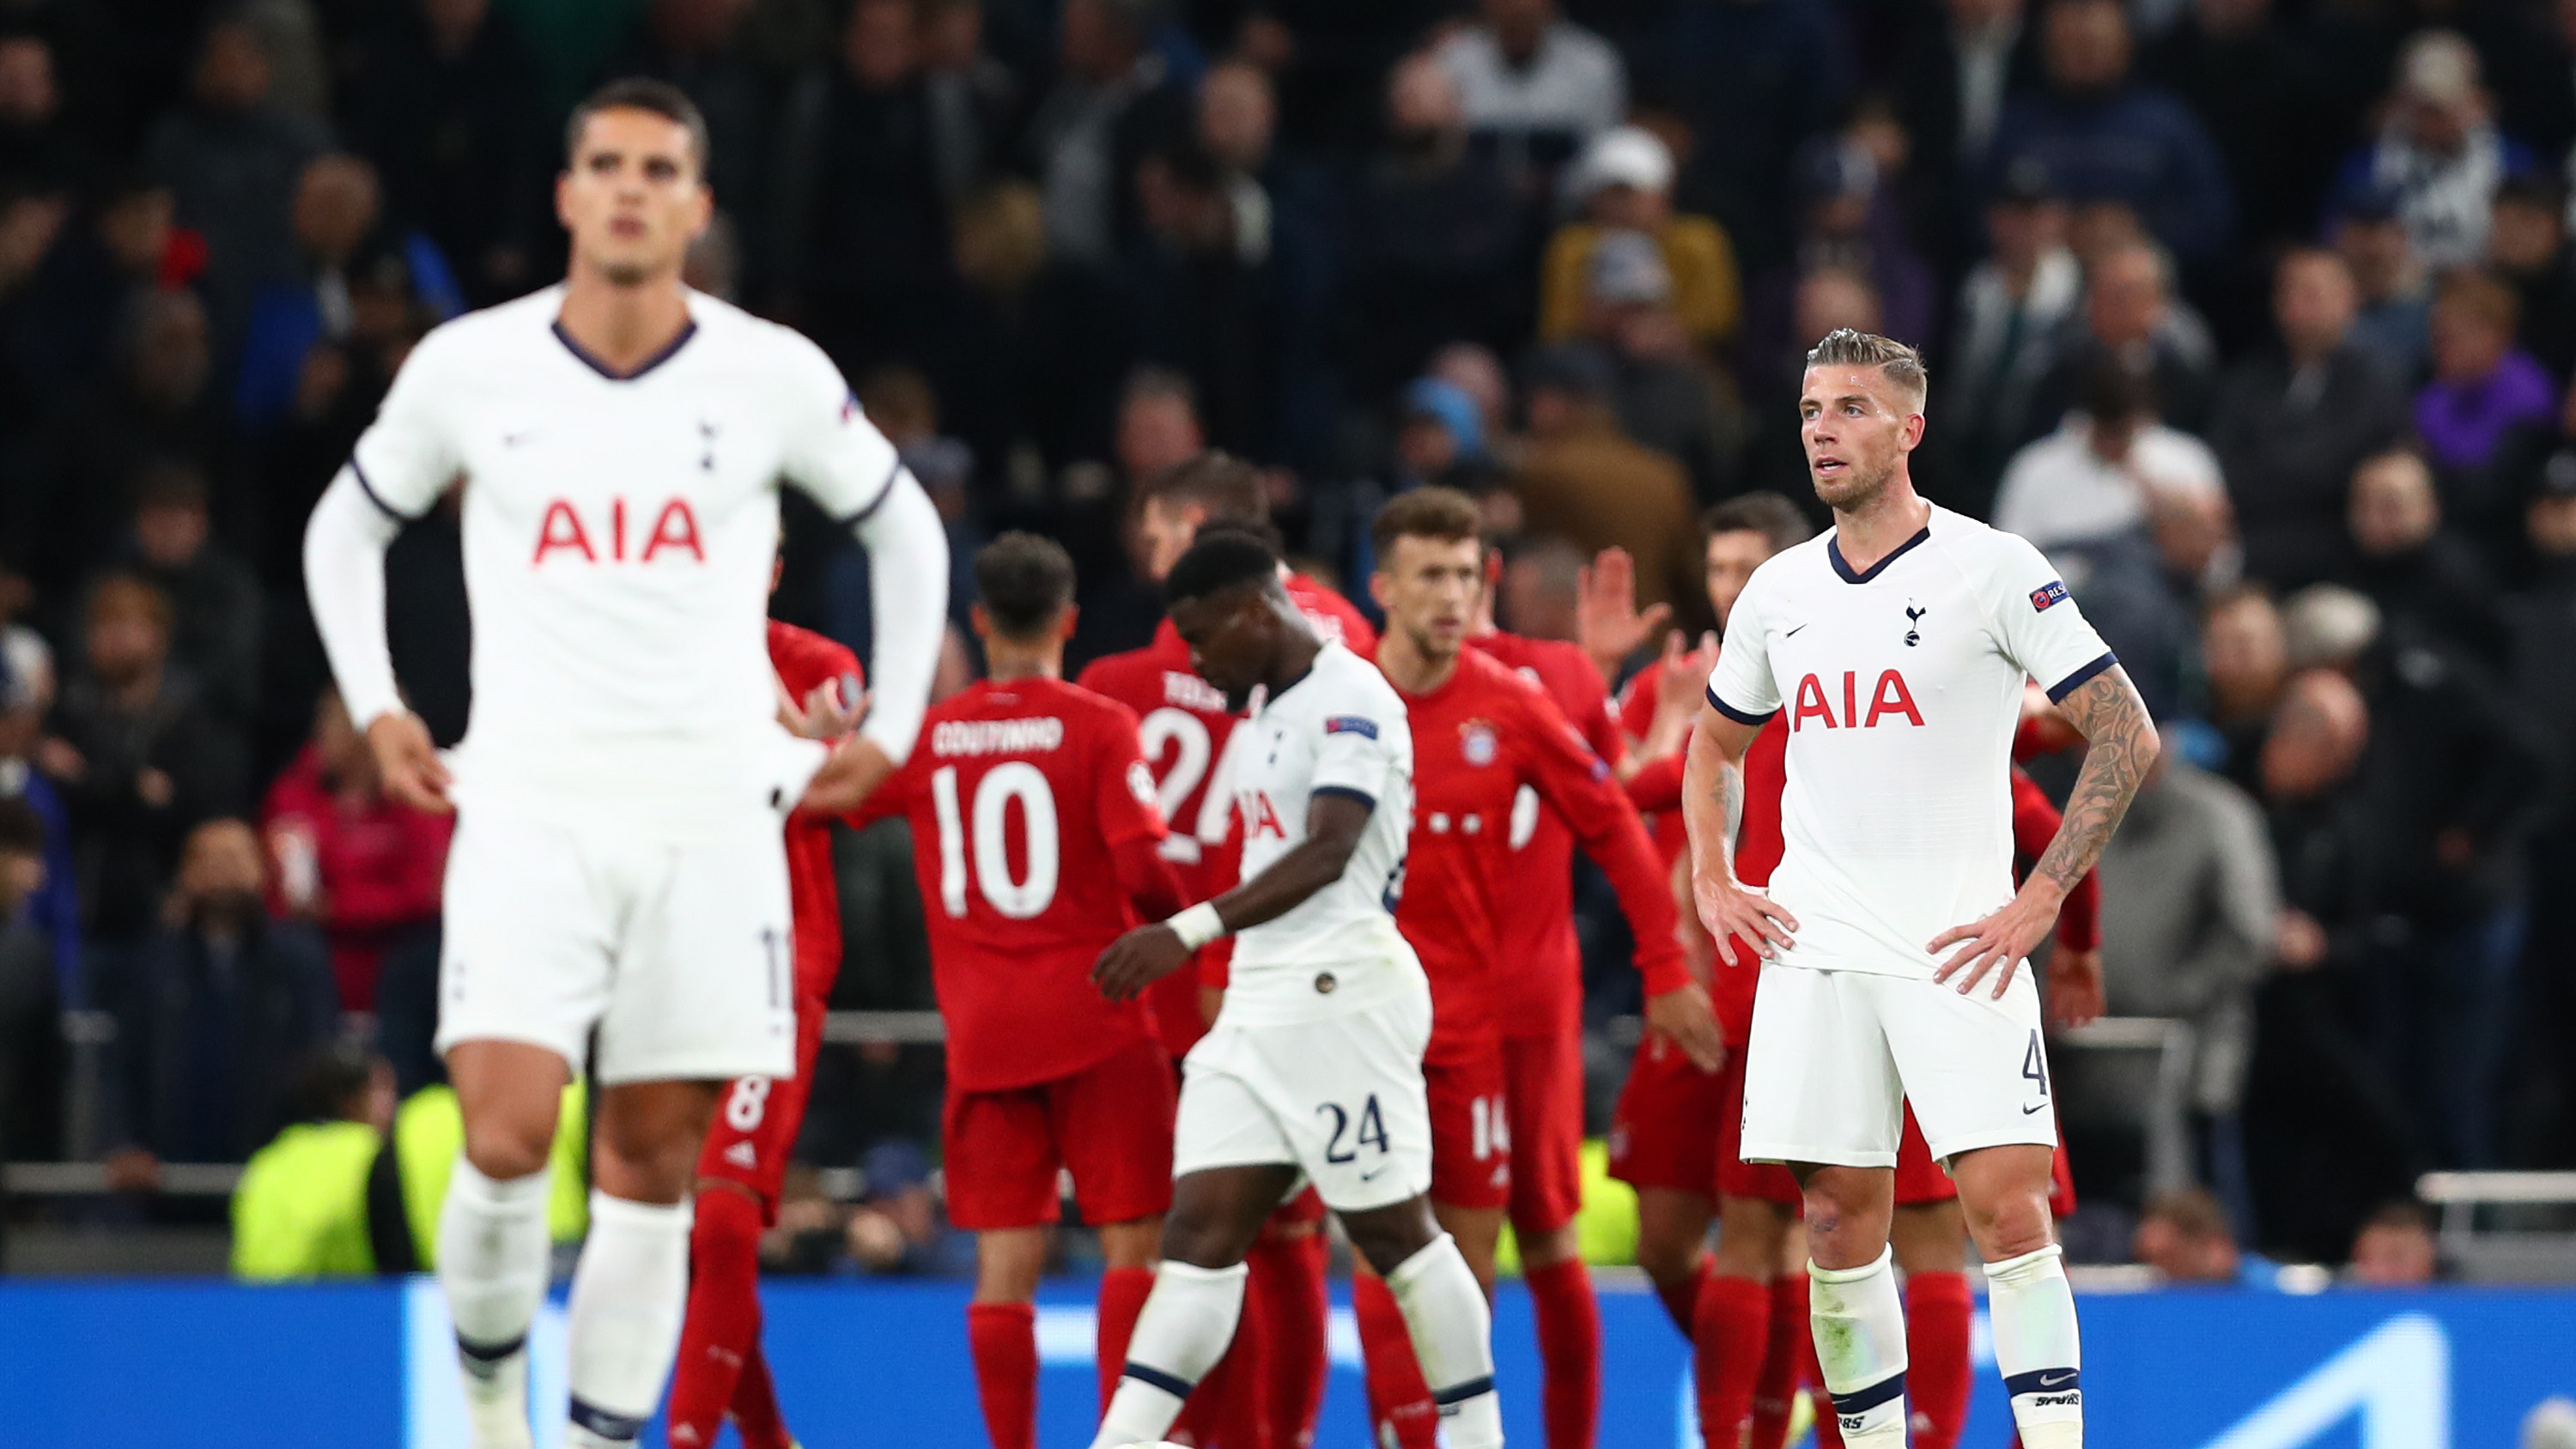 Champions League news: Tottenham gave up in Bayern Munich ...